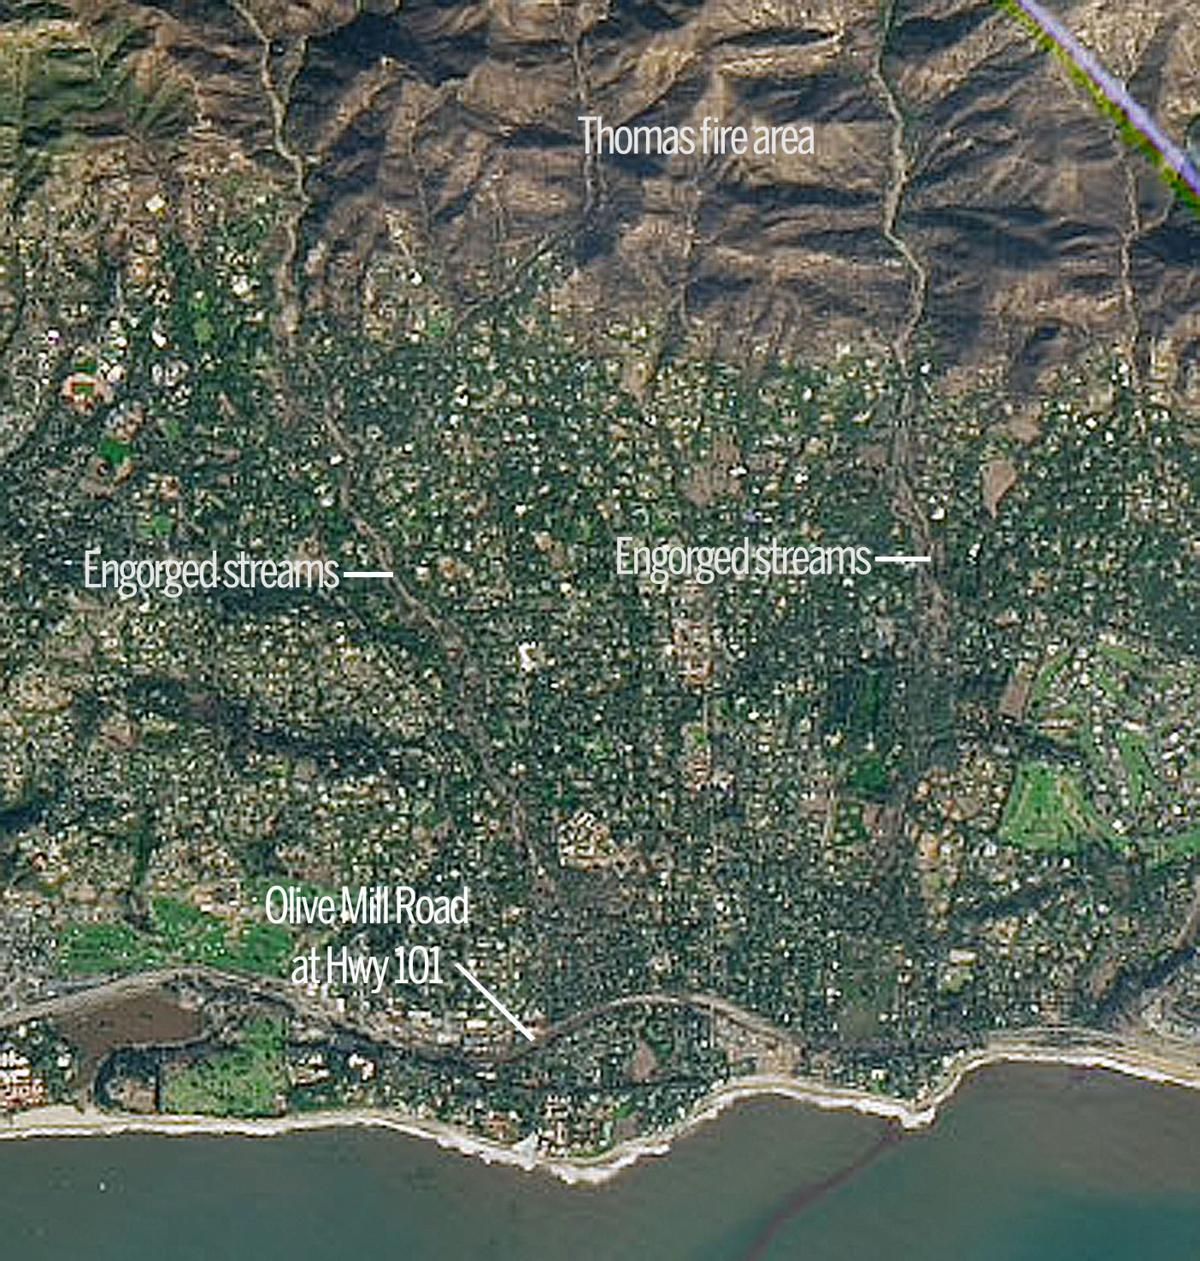 8 people remain missing in Montecito mudslides prominent real